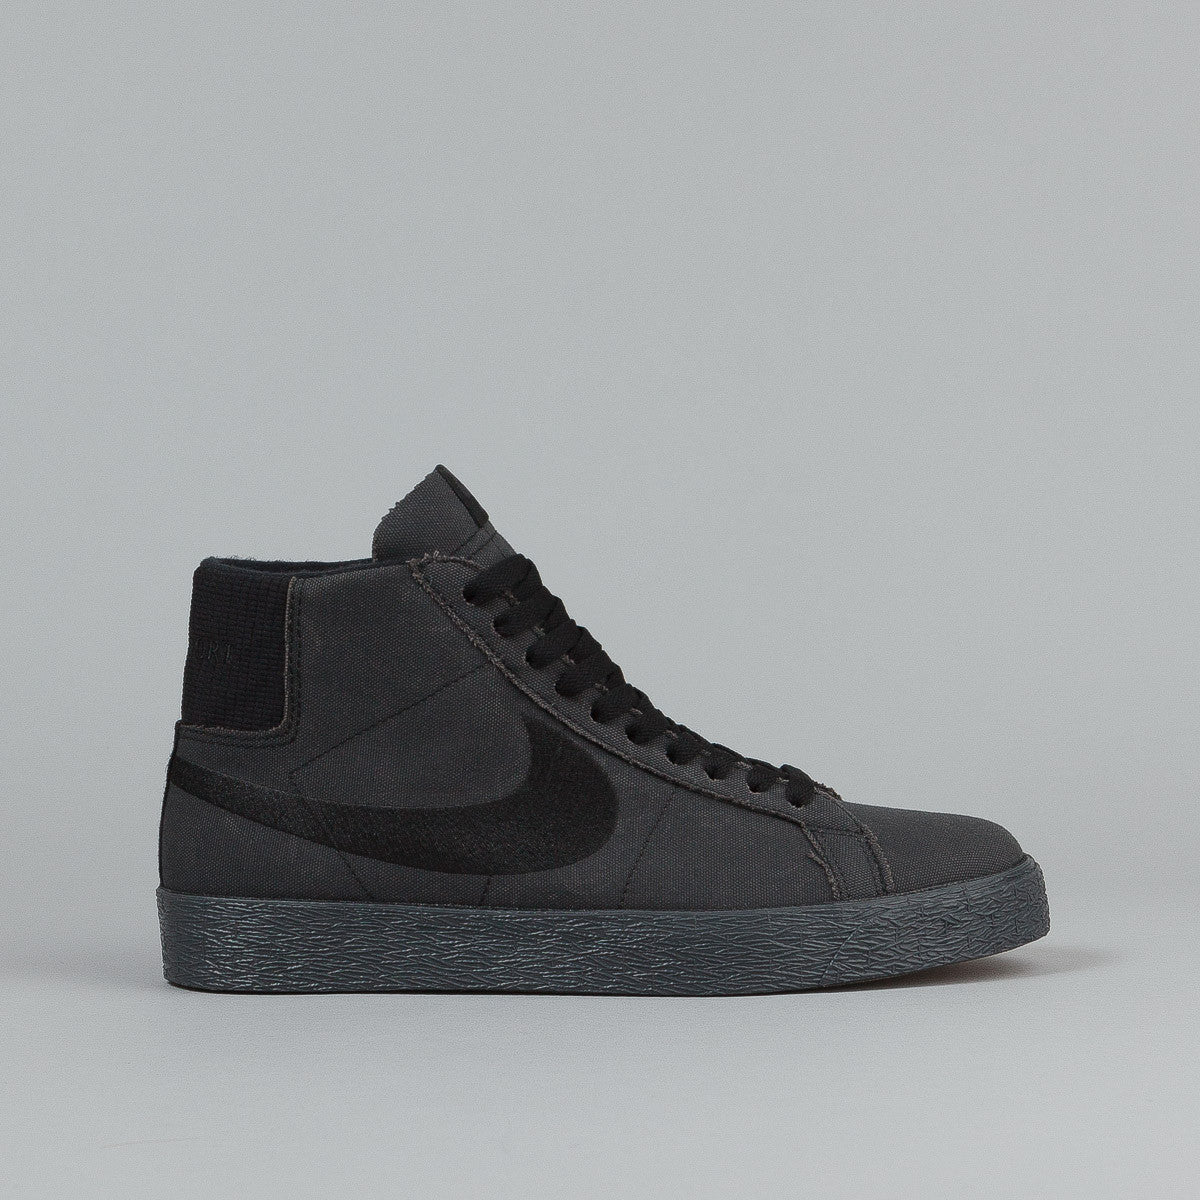 Nike SB x Pass Port Blazer QS Shoes